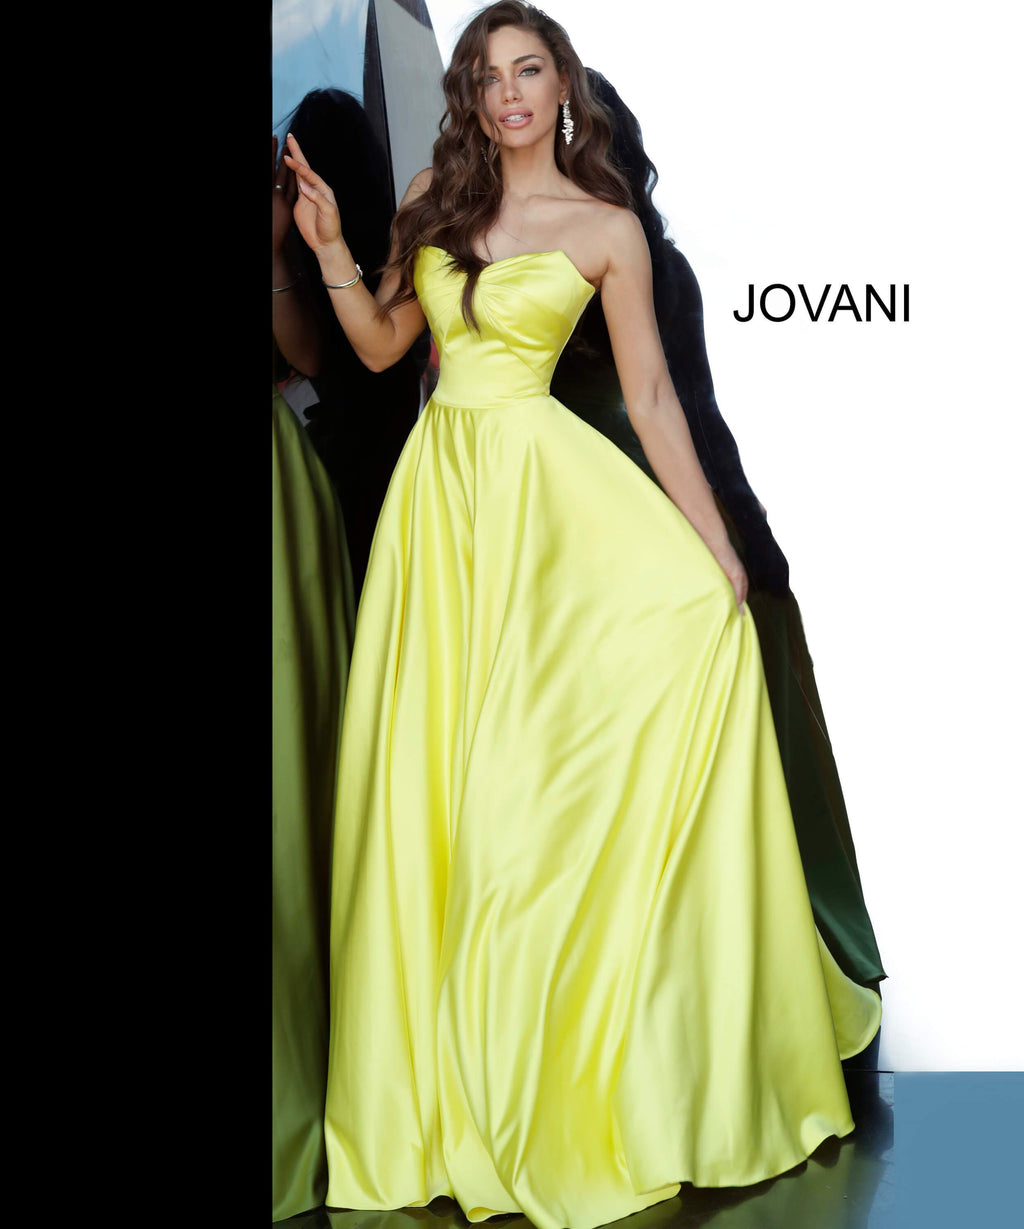 JOVANI 67847 Strapless Sweetheart Neckline Satin Evening Dress